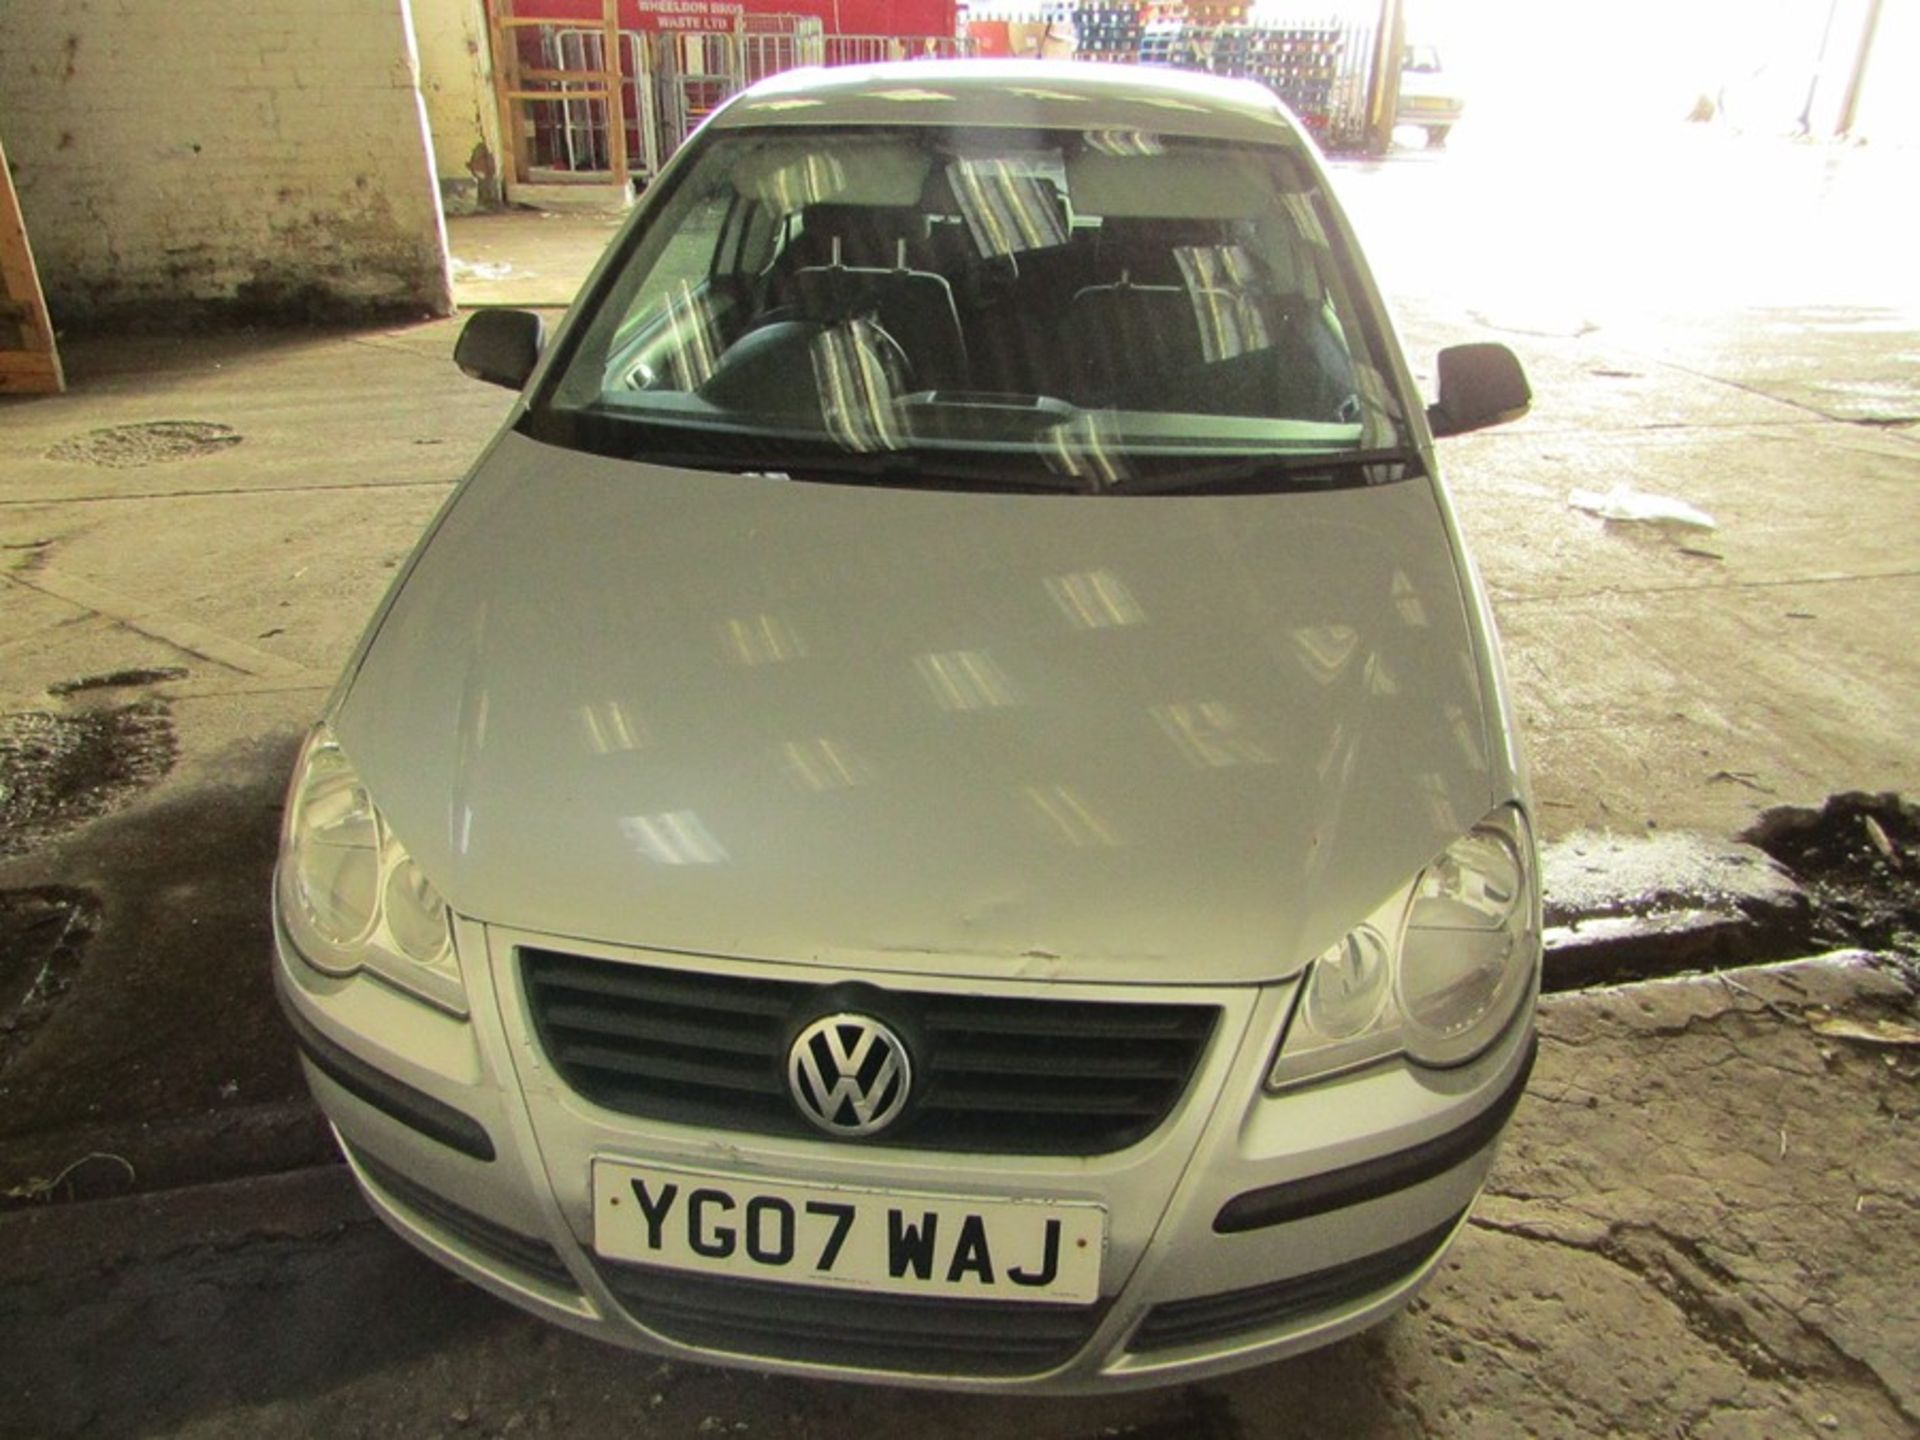 2007 Volkswagen Polo 1.2L hatchback, starts and drives 70,294 Miles Failed MOT 12/09/2020 due to; - Image 6 of 9